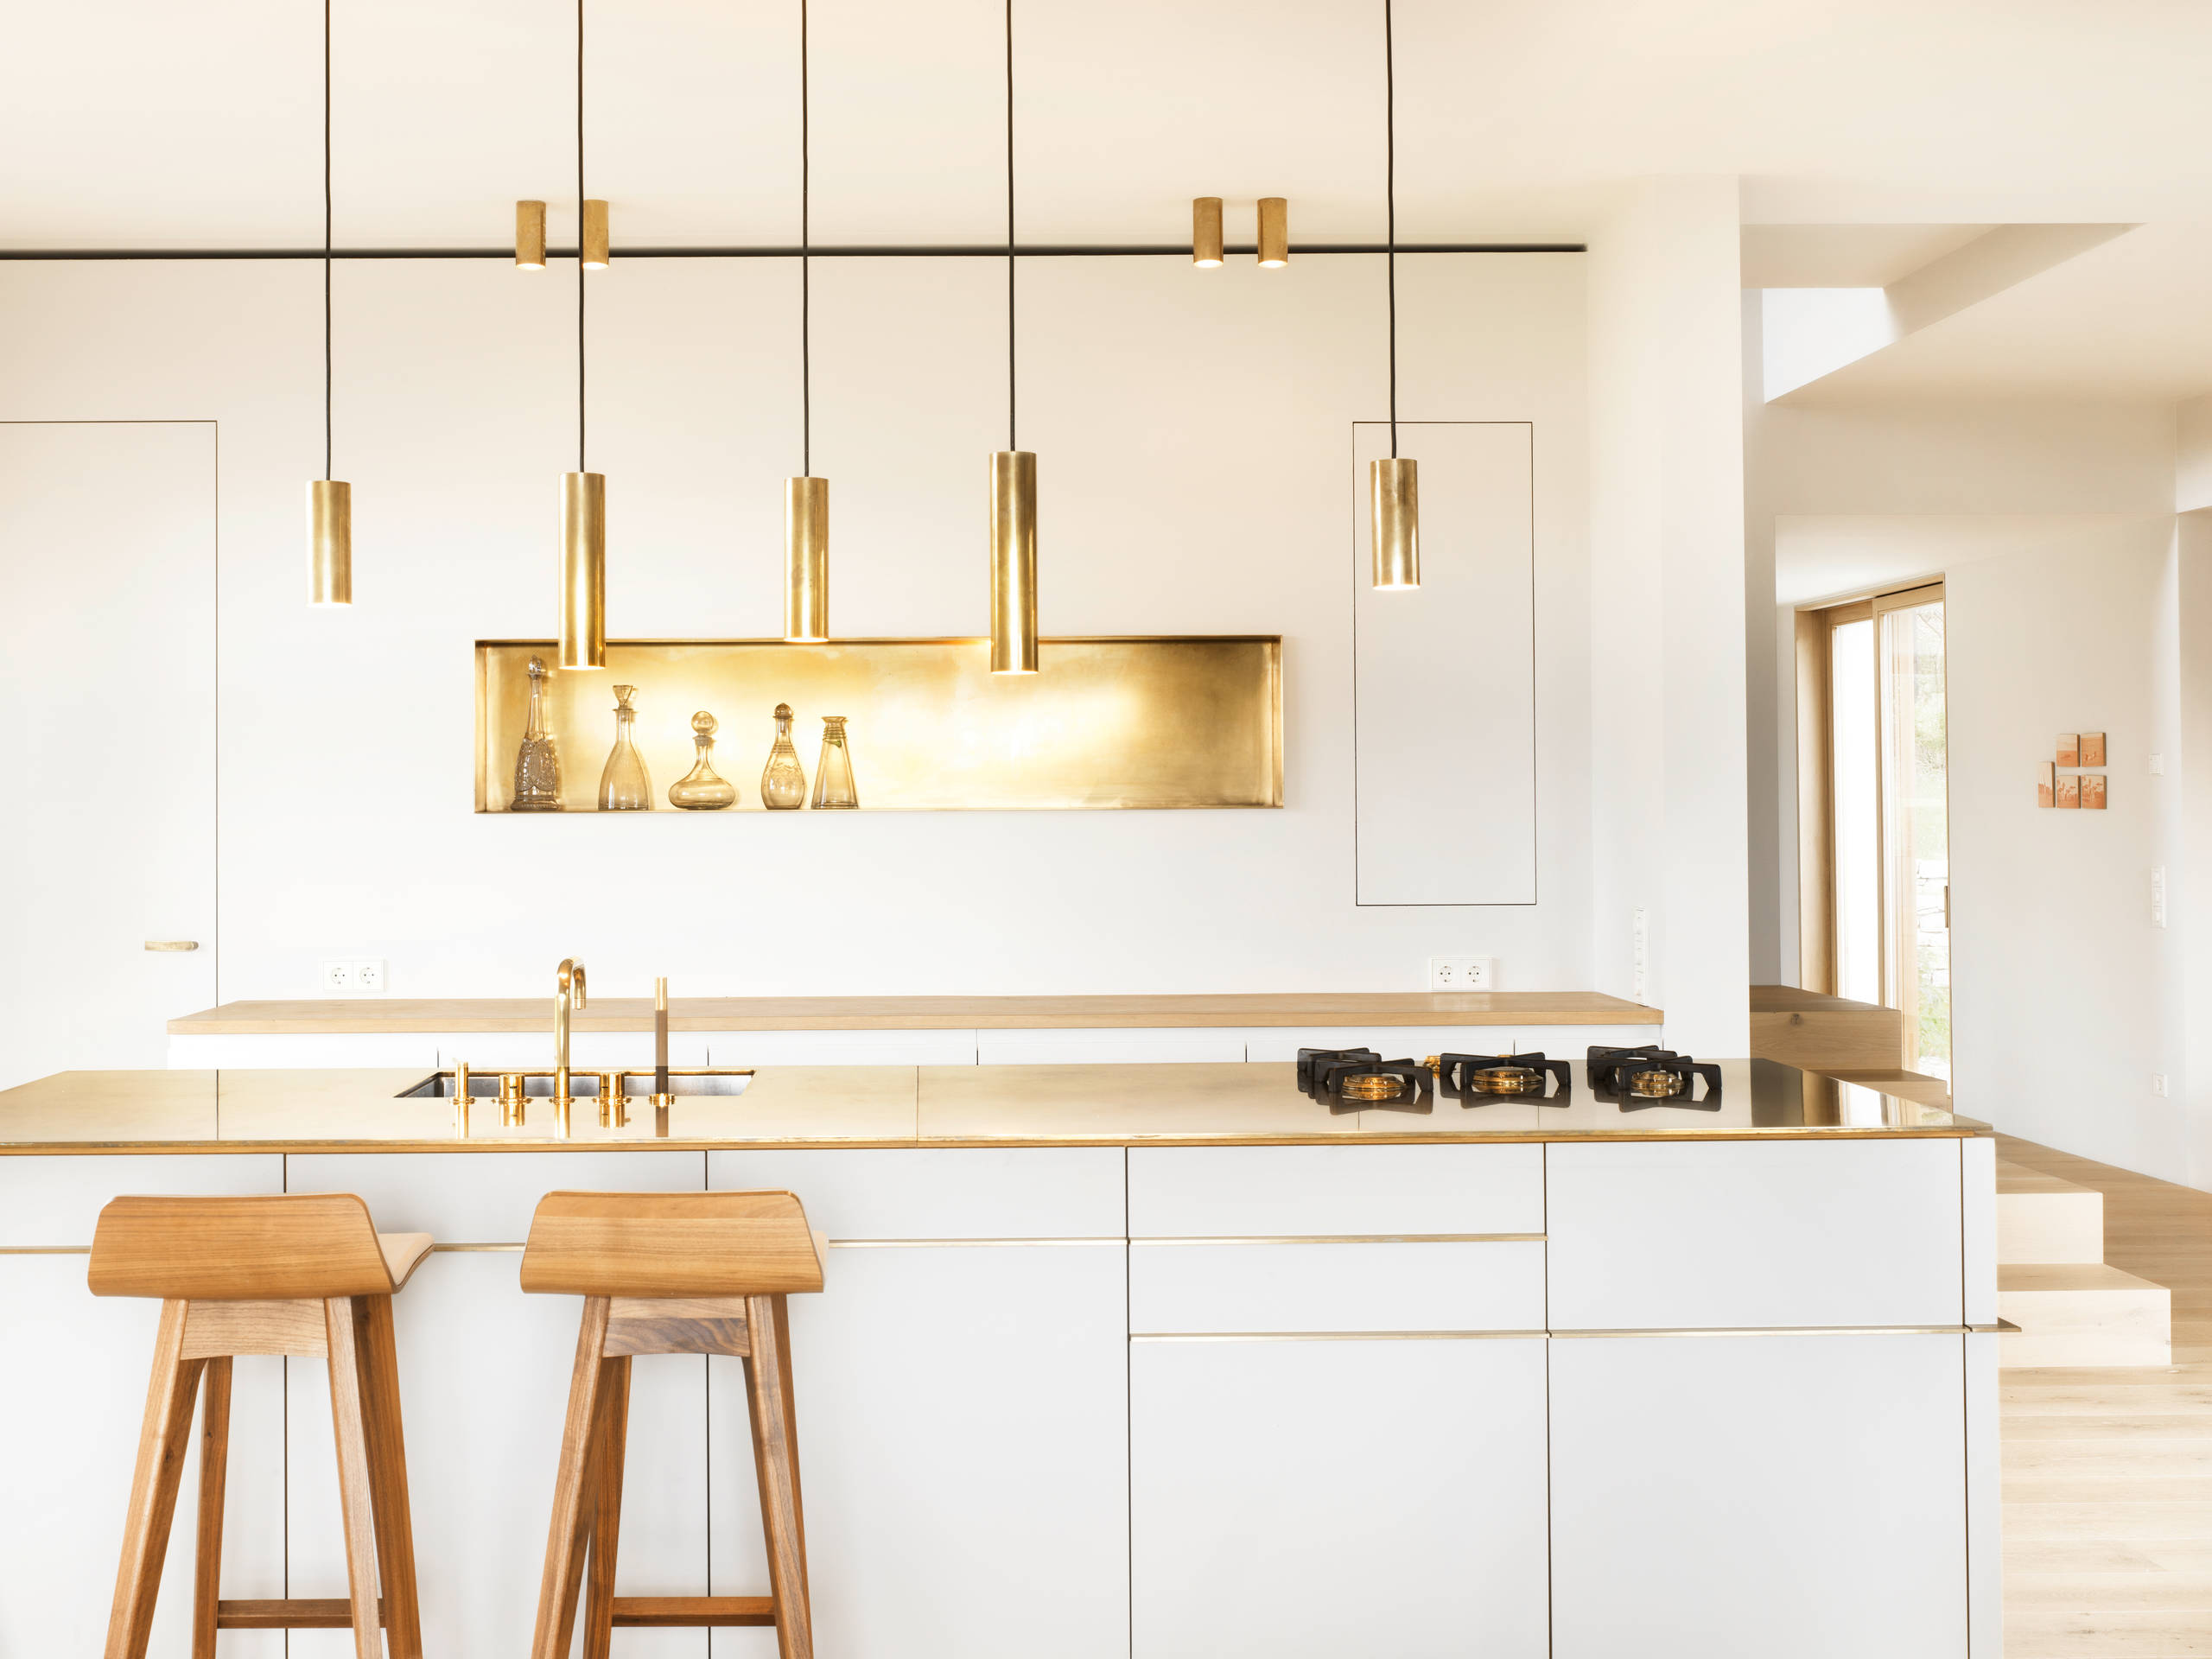 contemporary-modern-kitchen-gold-countertop-hardware-lighting-brass-metal-scandinavian-nordic-swedish-backsplash-modern-golden-kitchen-cabinets-ikea